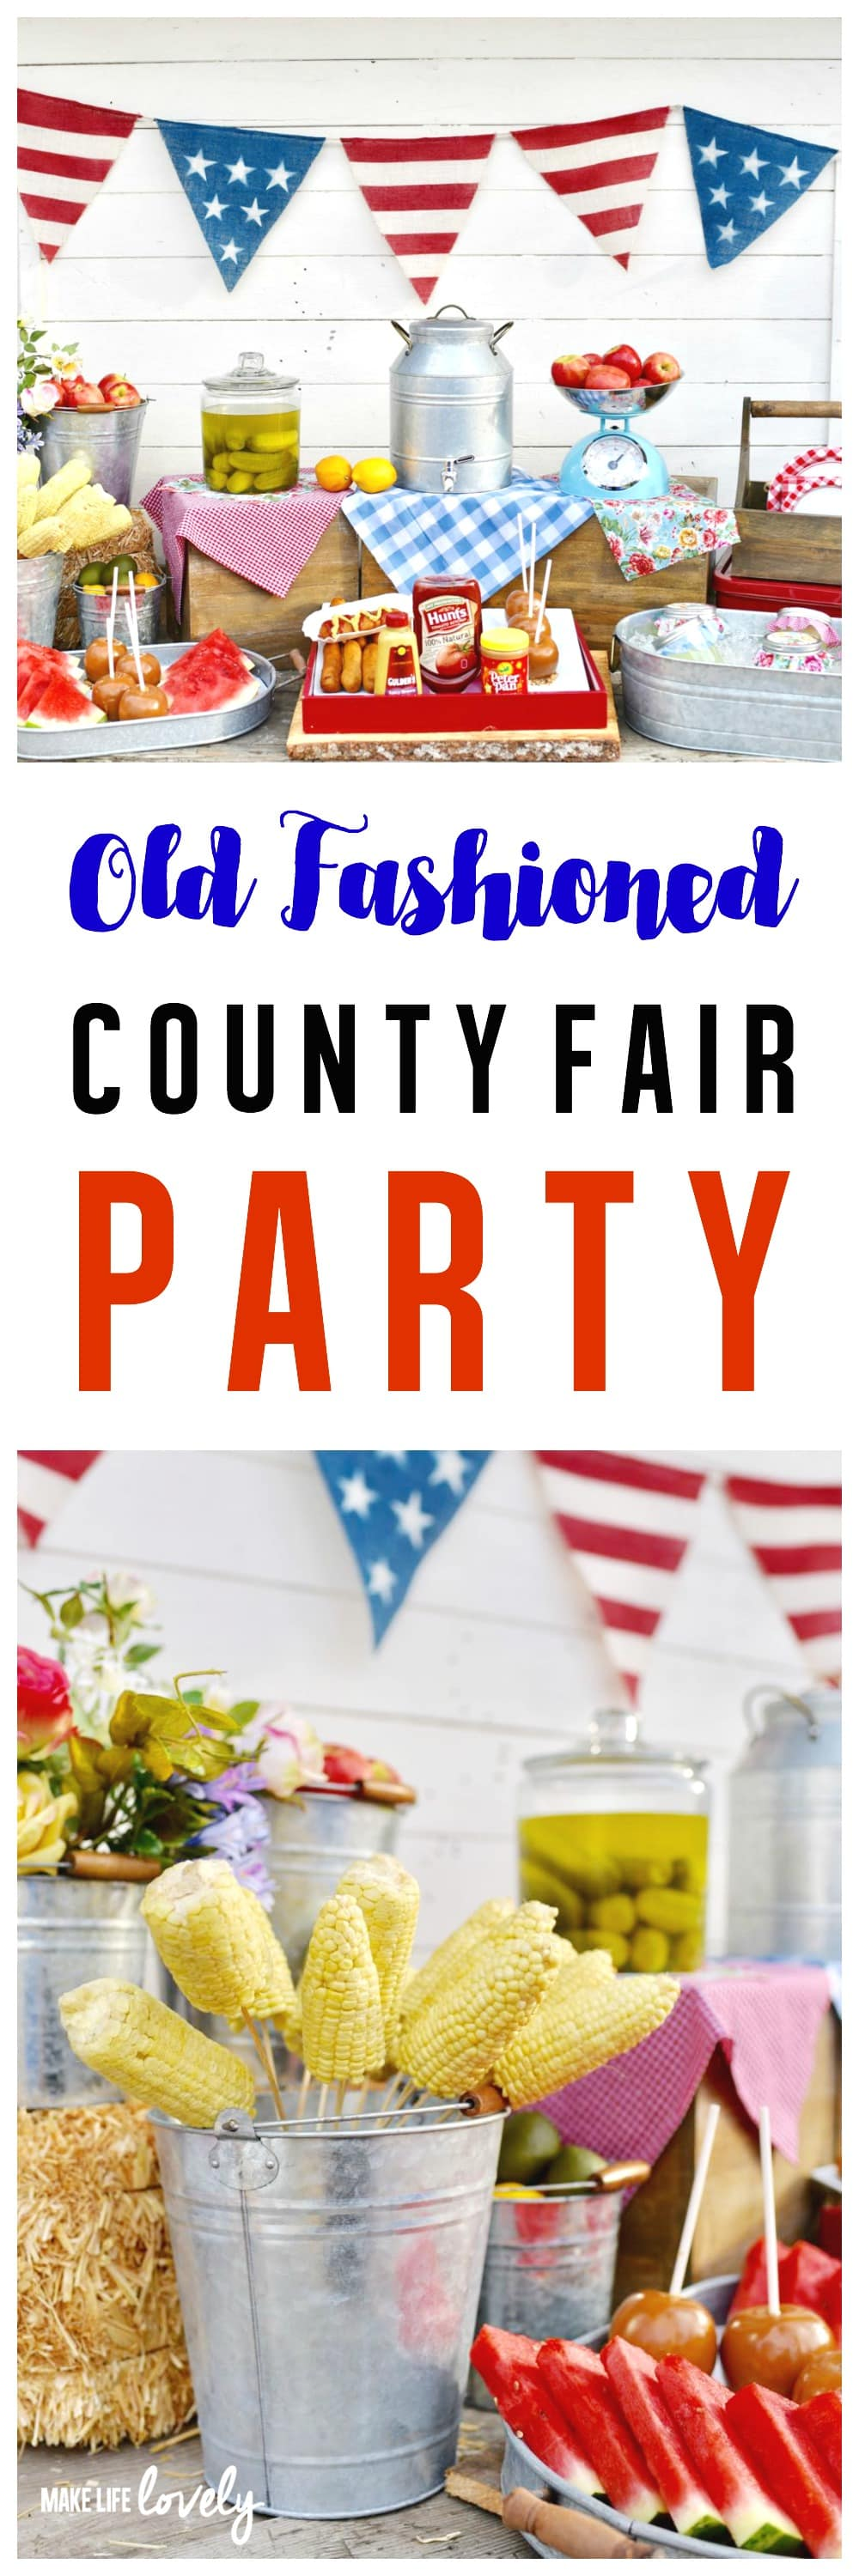 County Fair Days | Fair day, County fair, Fashion